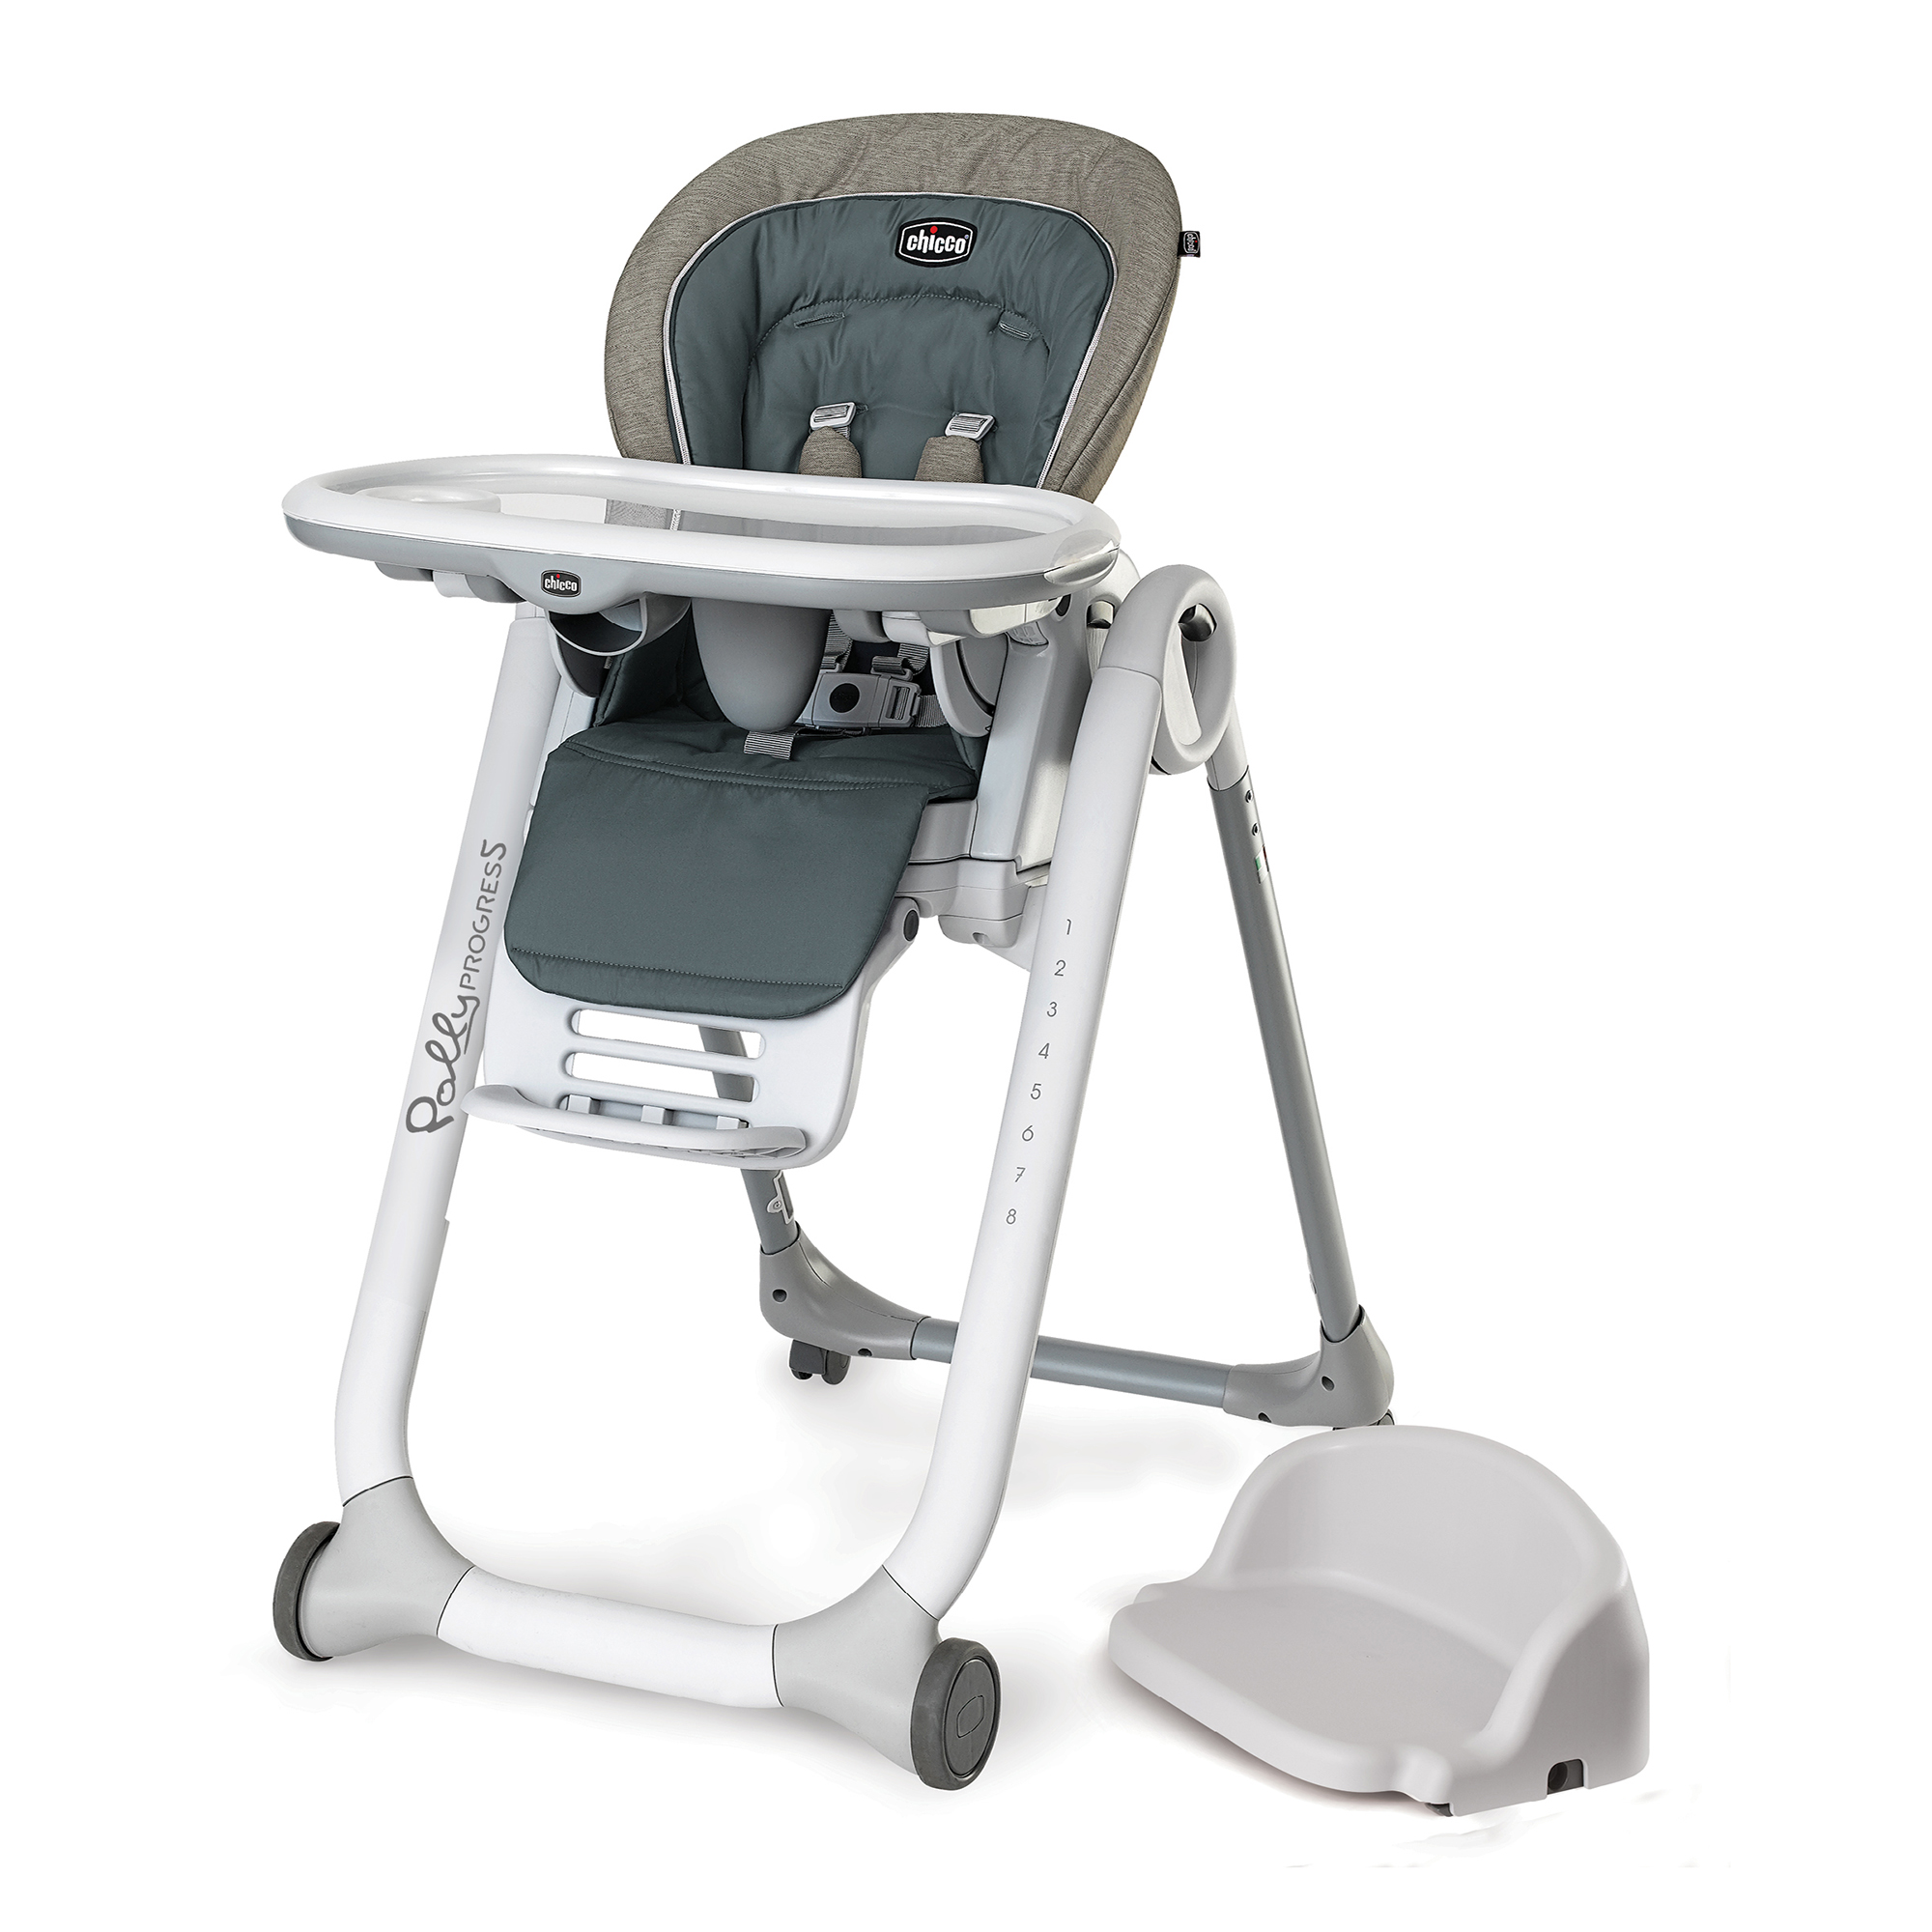 Chicco Polly Progress 5-in-1 High Chair, Naturale by Chicco